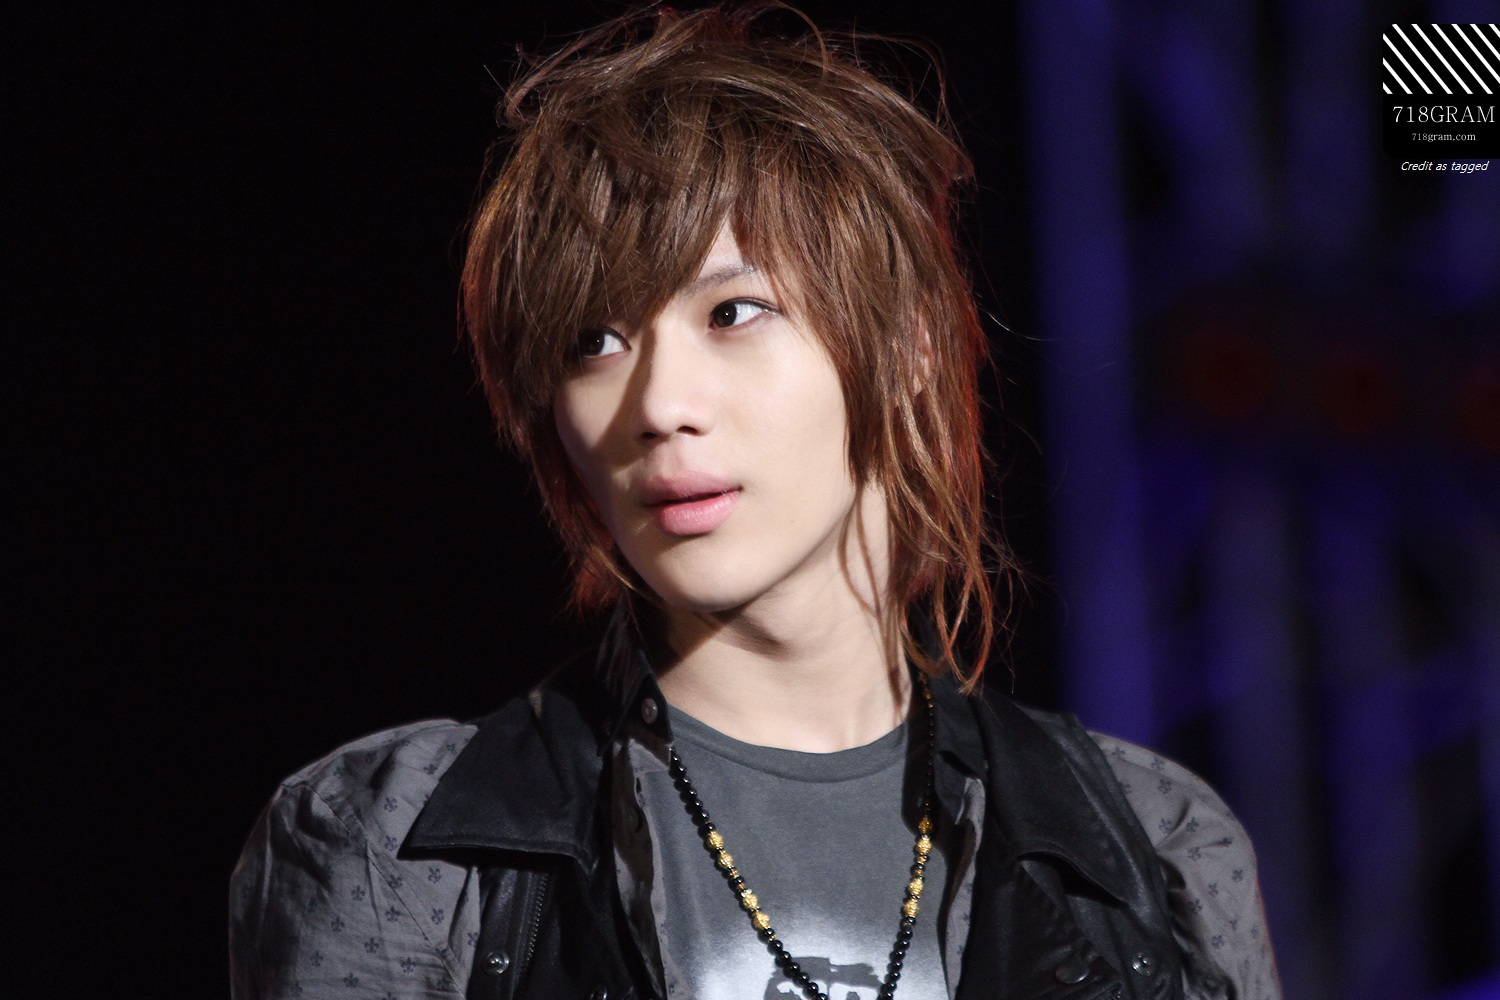 Shinee images SHINee Taemin HD wallpaper and background 1500x1000